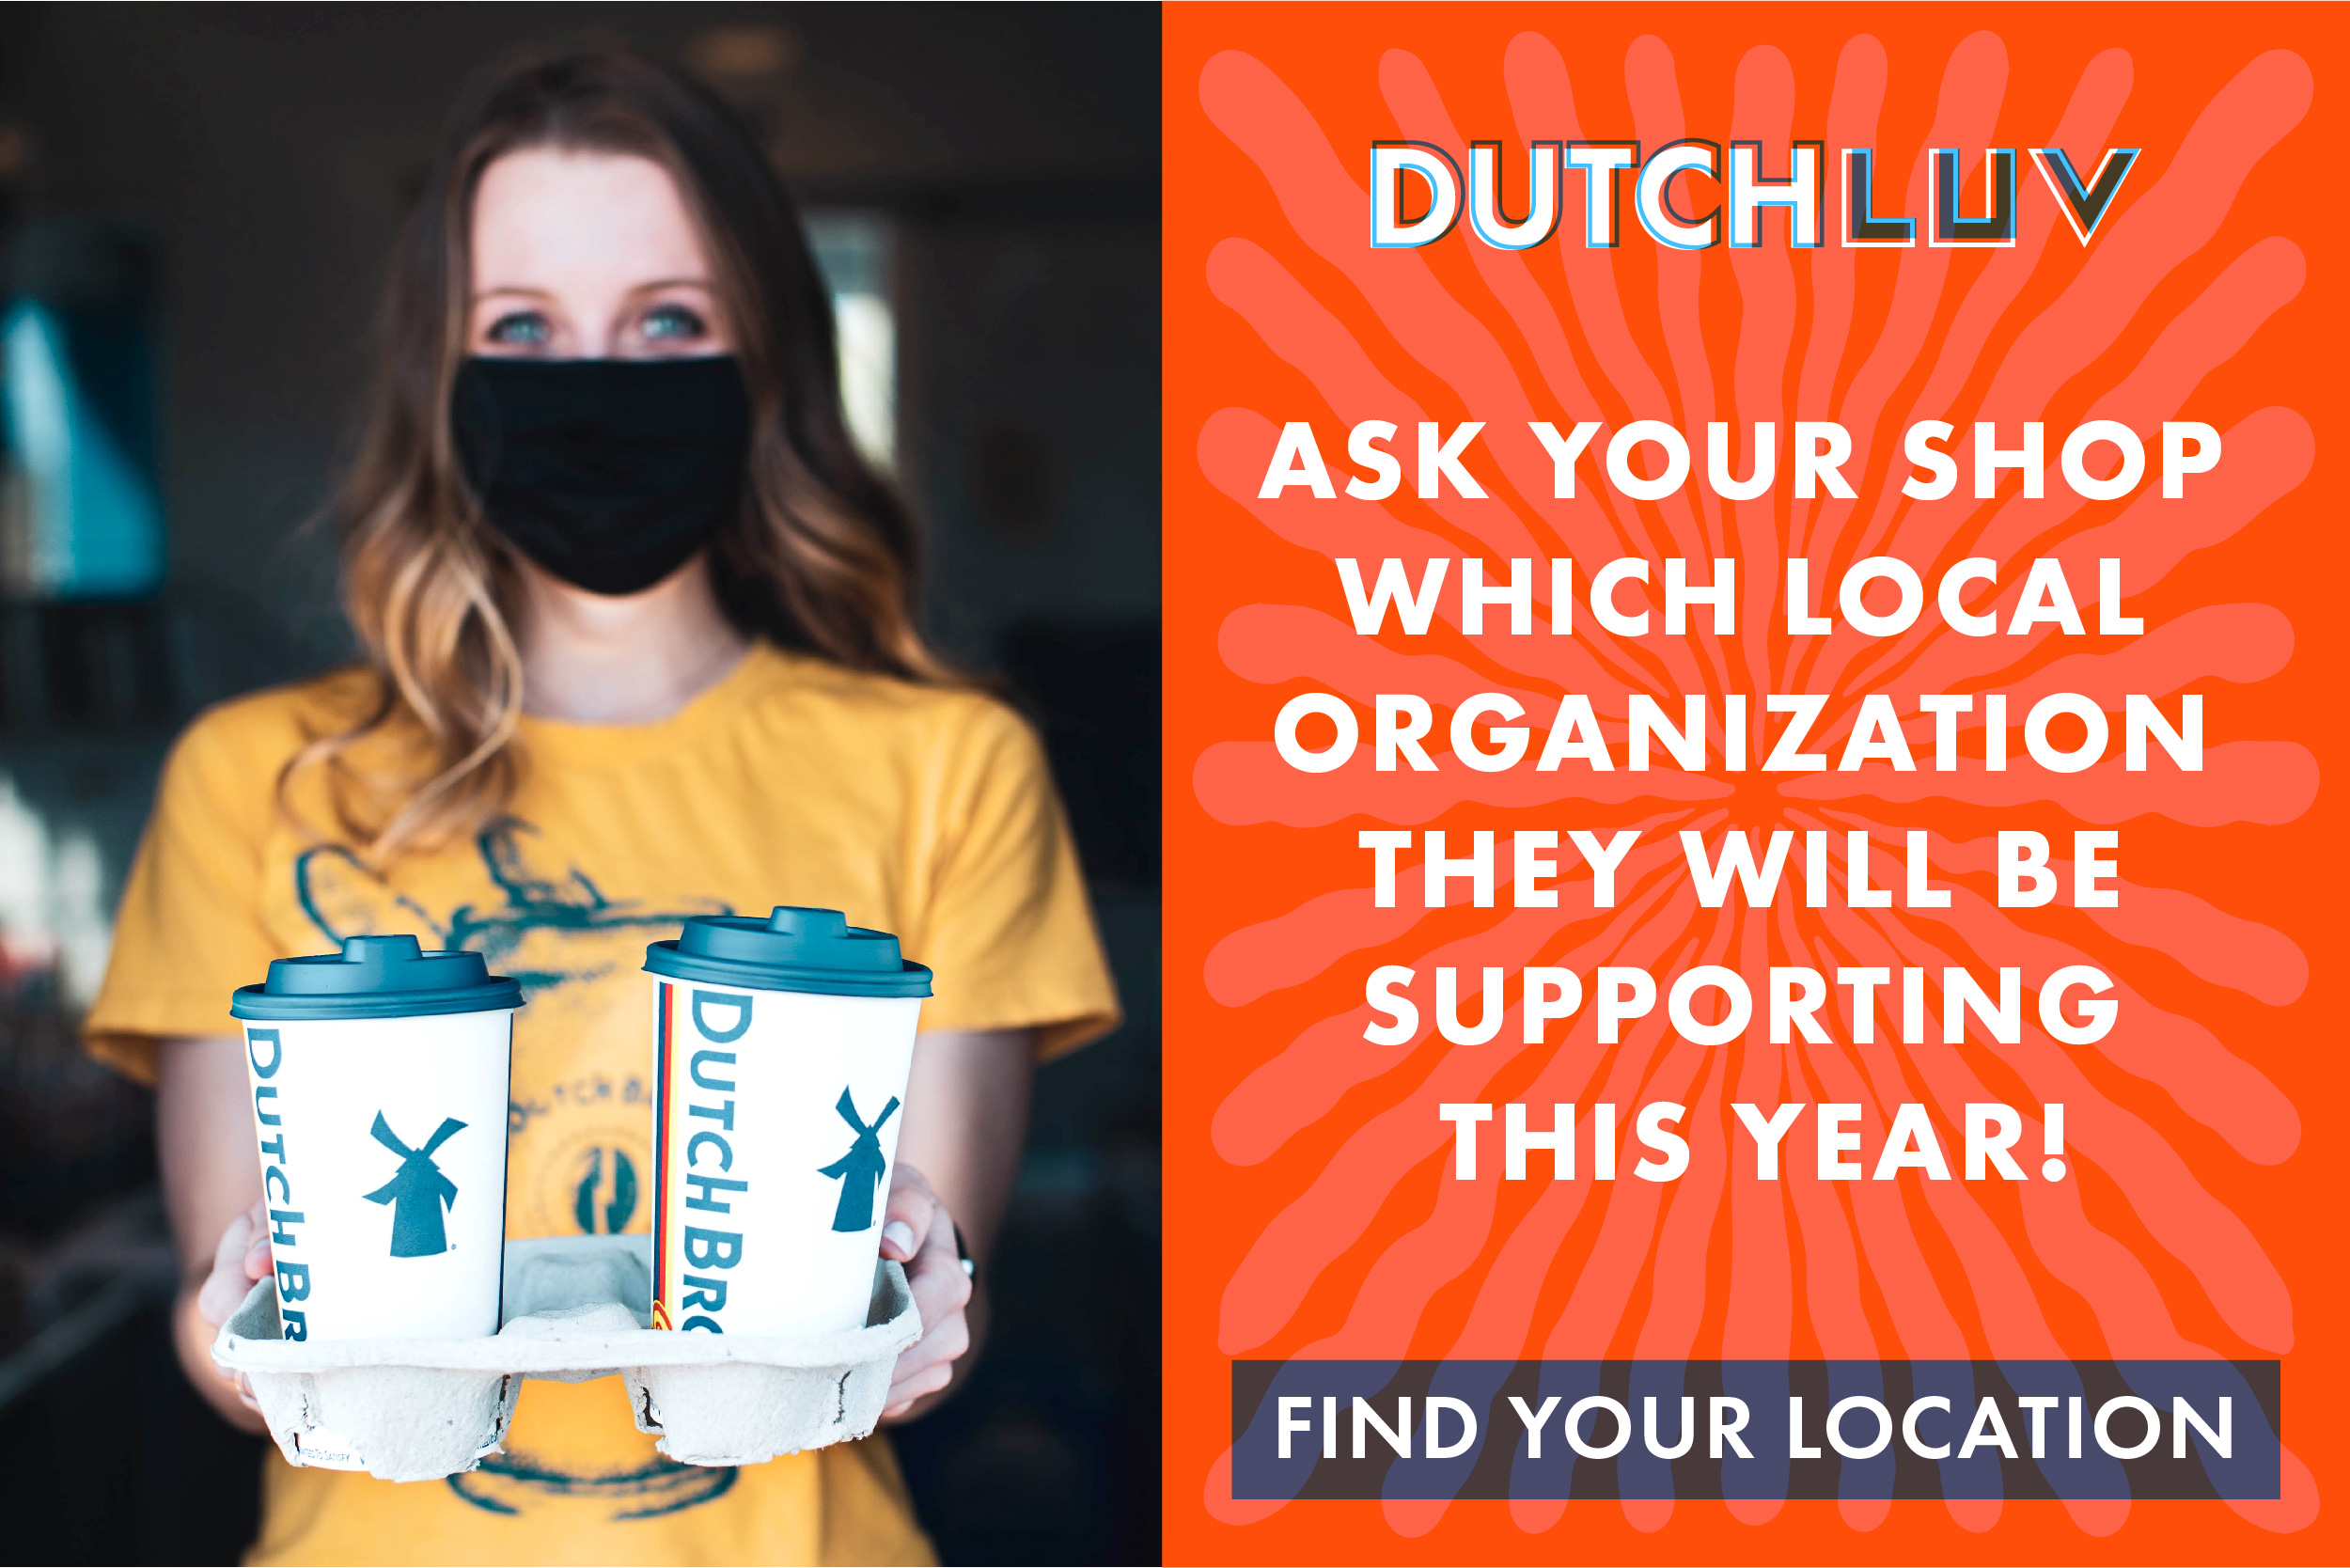 Dutch Luv. Ask your shop which local organization they will be supporting this year. Find your location. (Link to Dutch Bros locations page)